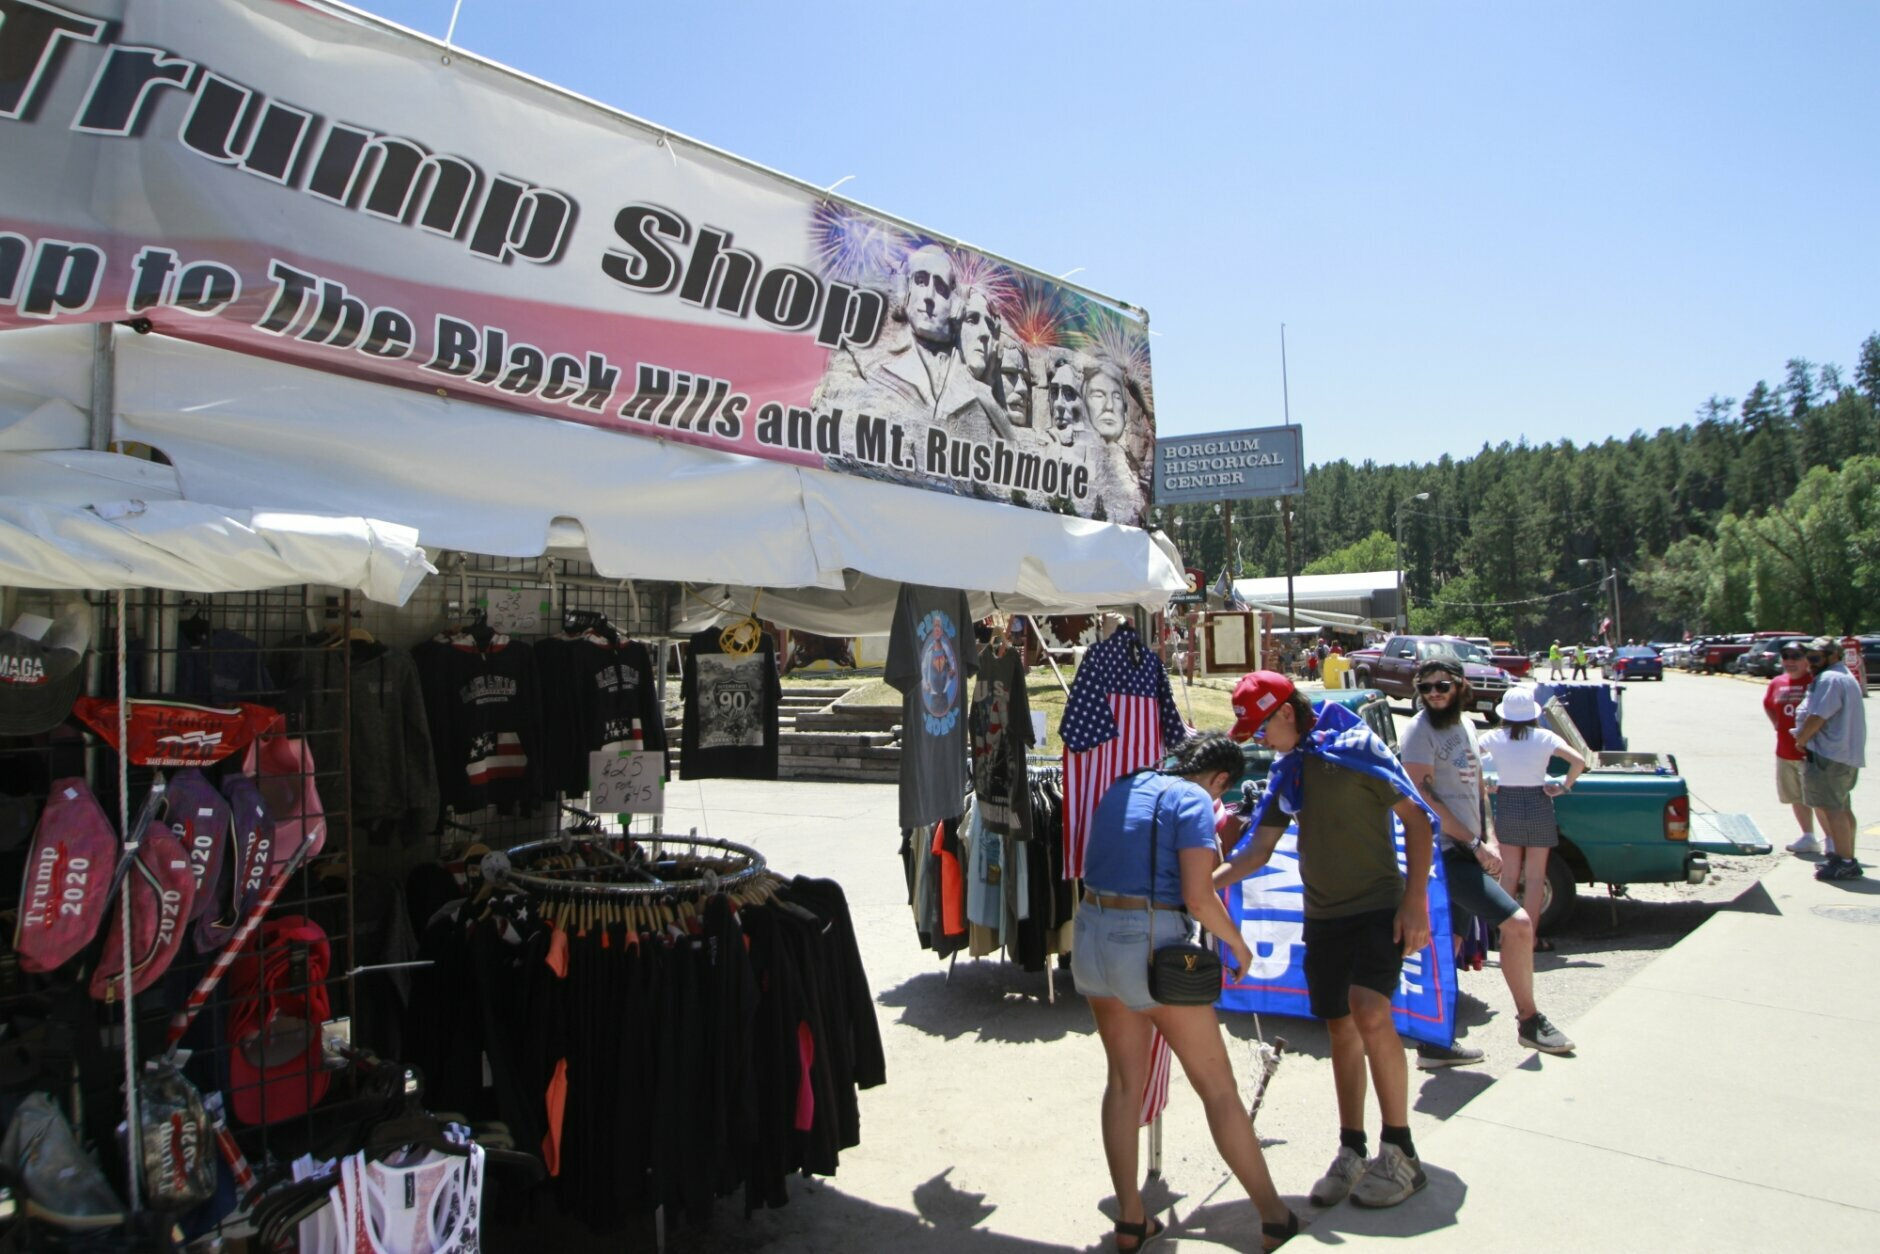 People shop for Trump memorabilia in Keystone, S.D. on Friday, July 3, 2020 ahead of a fireworks display at Mount Rushmore the president is expected to attend. (AP Photo/Stephen Groves)